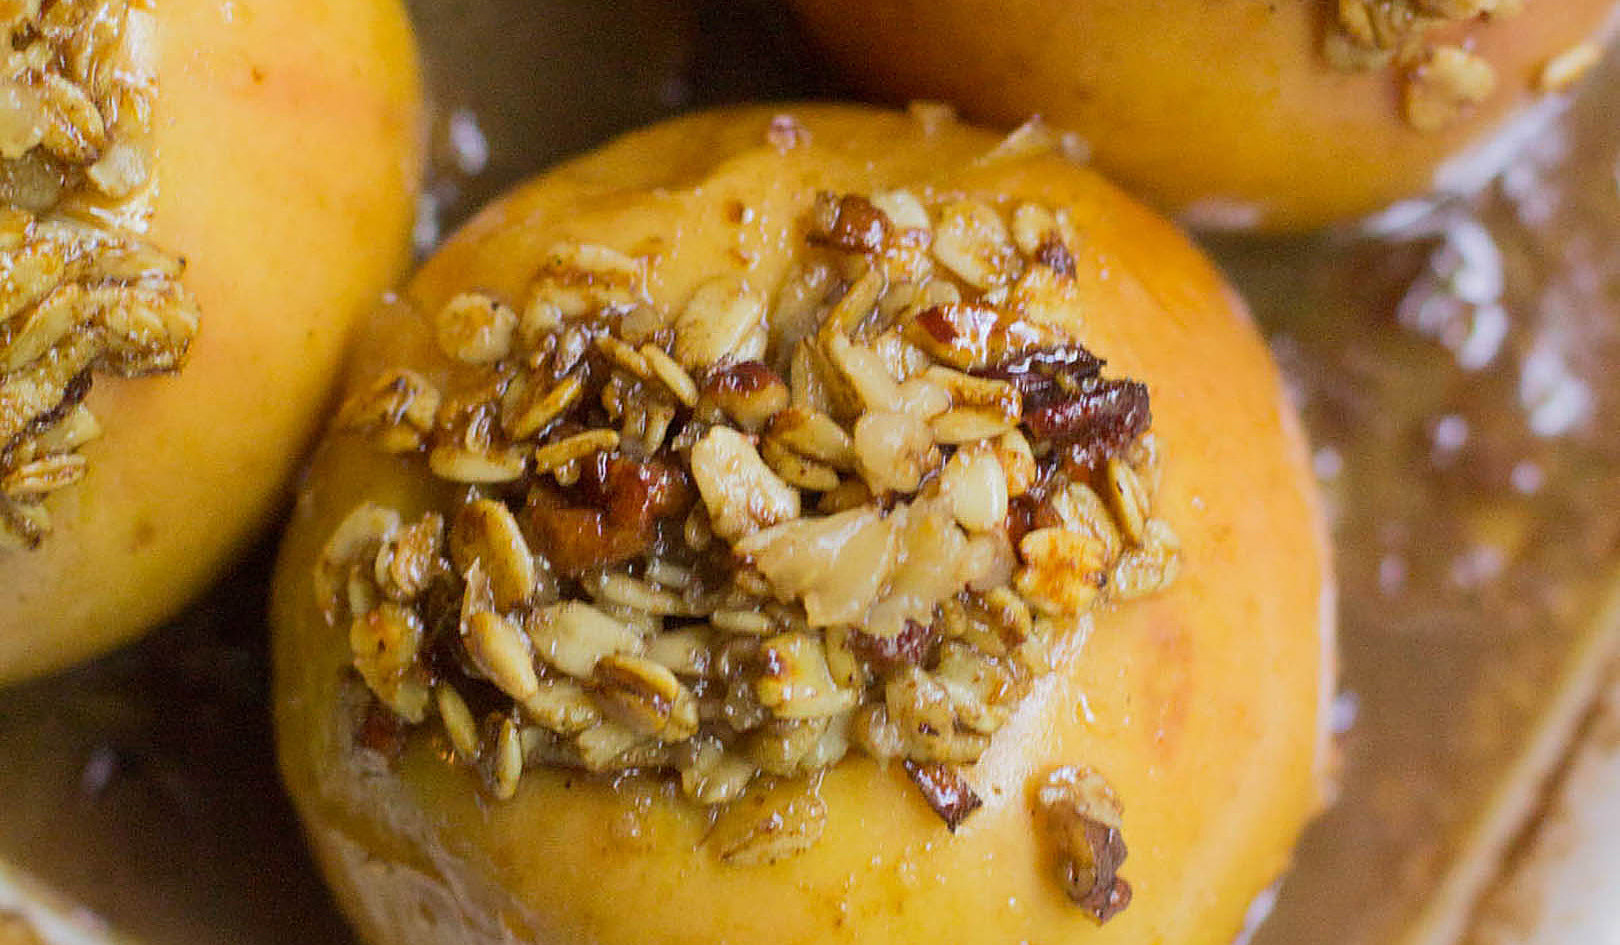 Baked apples with Bourbon Caramel Sauce